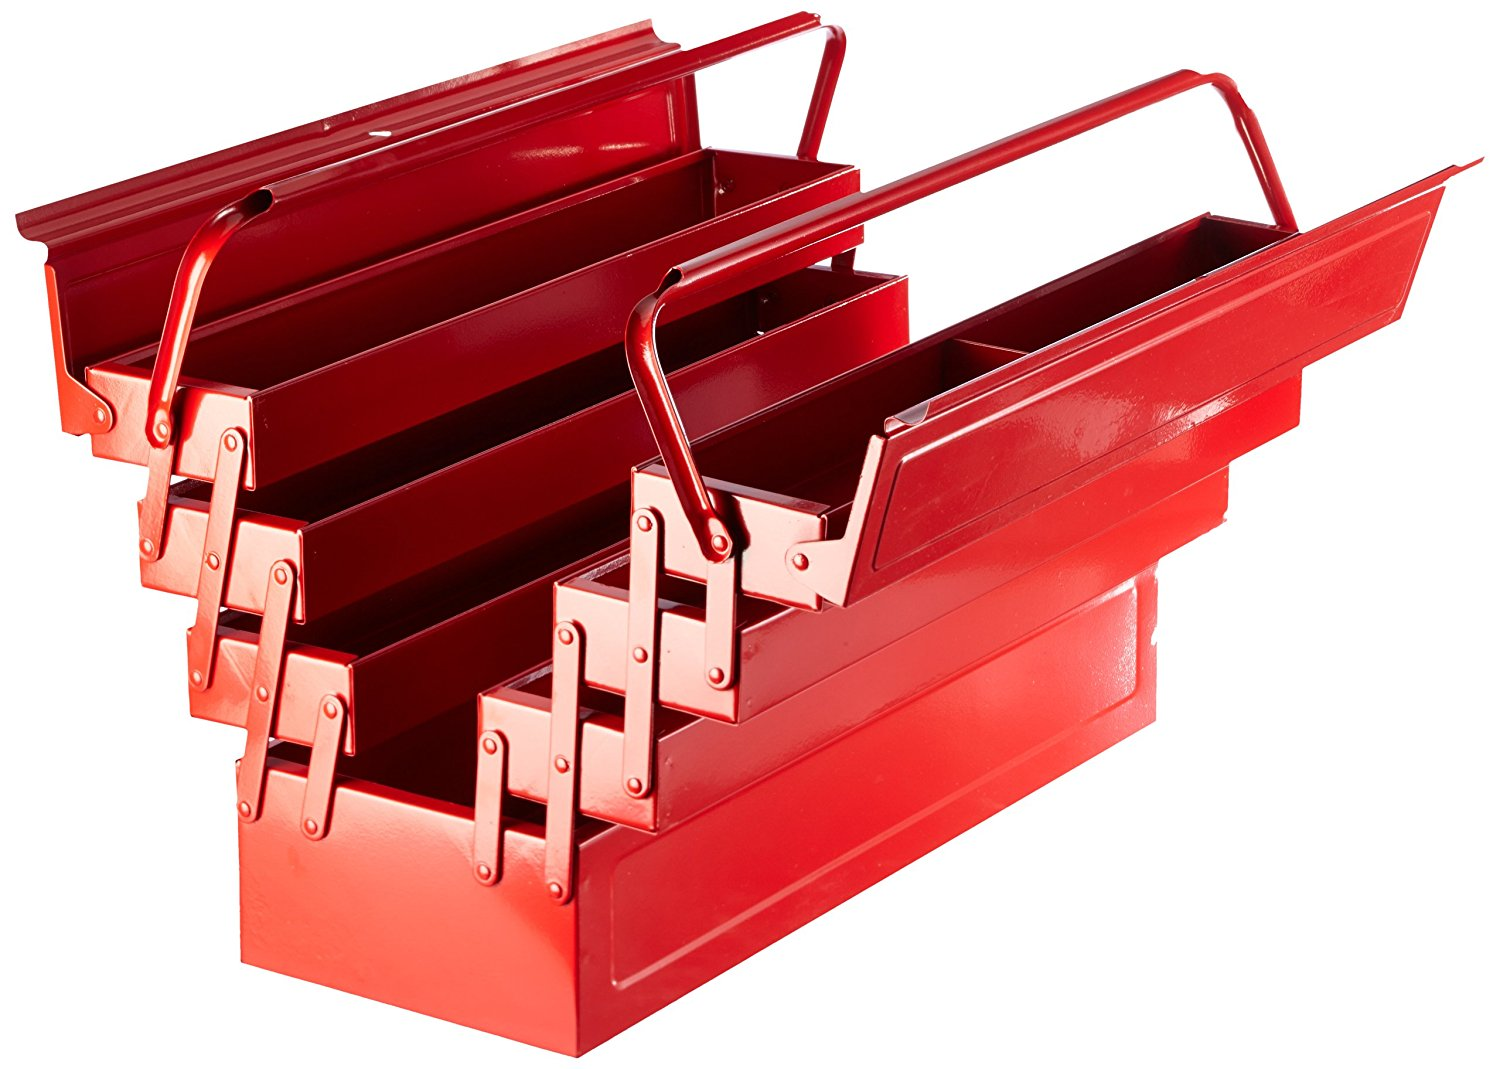 laser tools clearout red metal toolbox tool box cantilever 7 tray